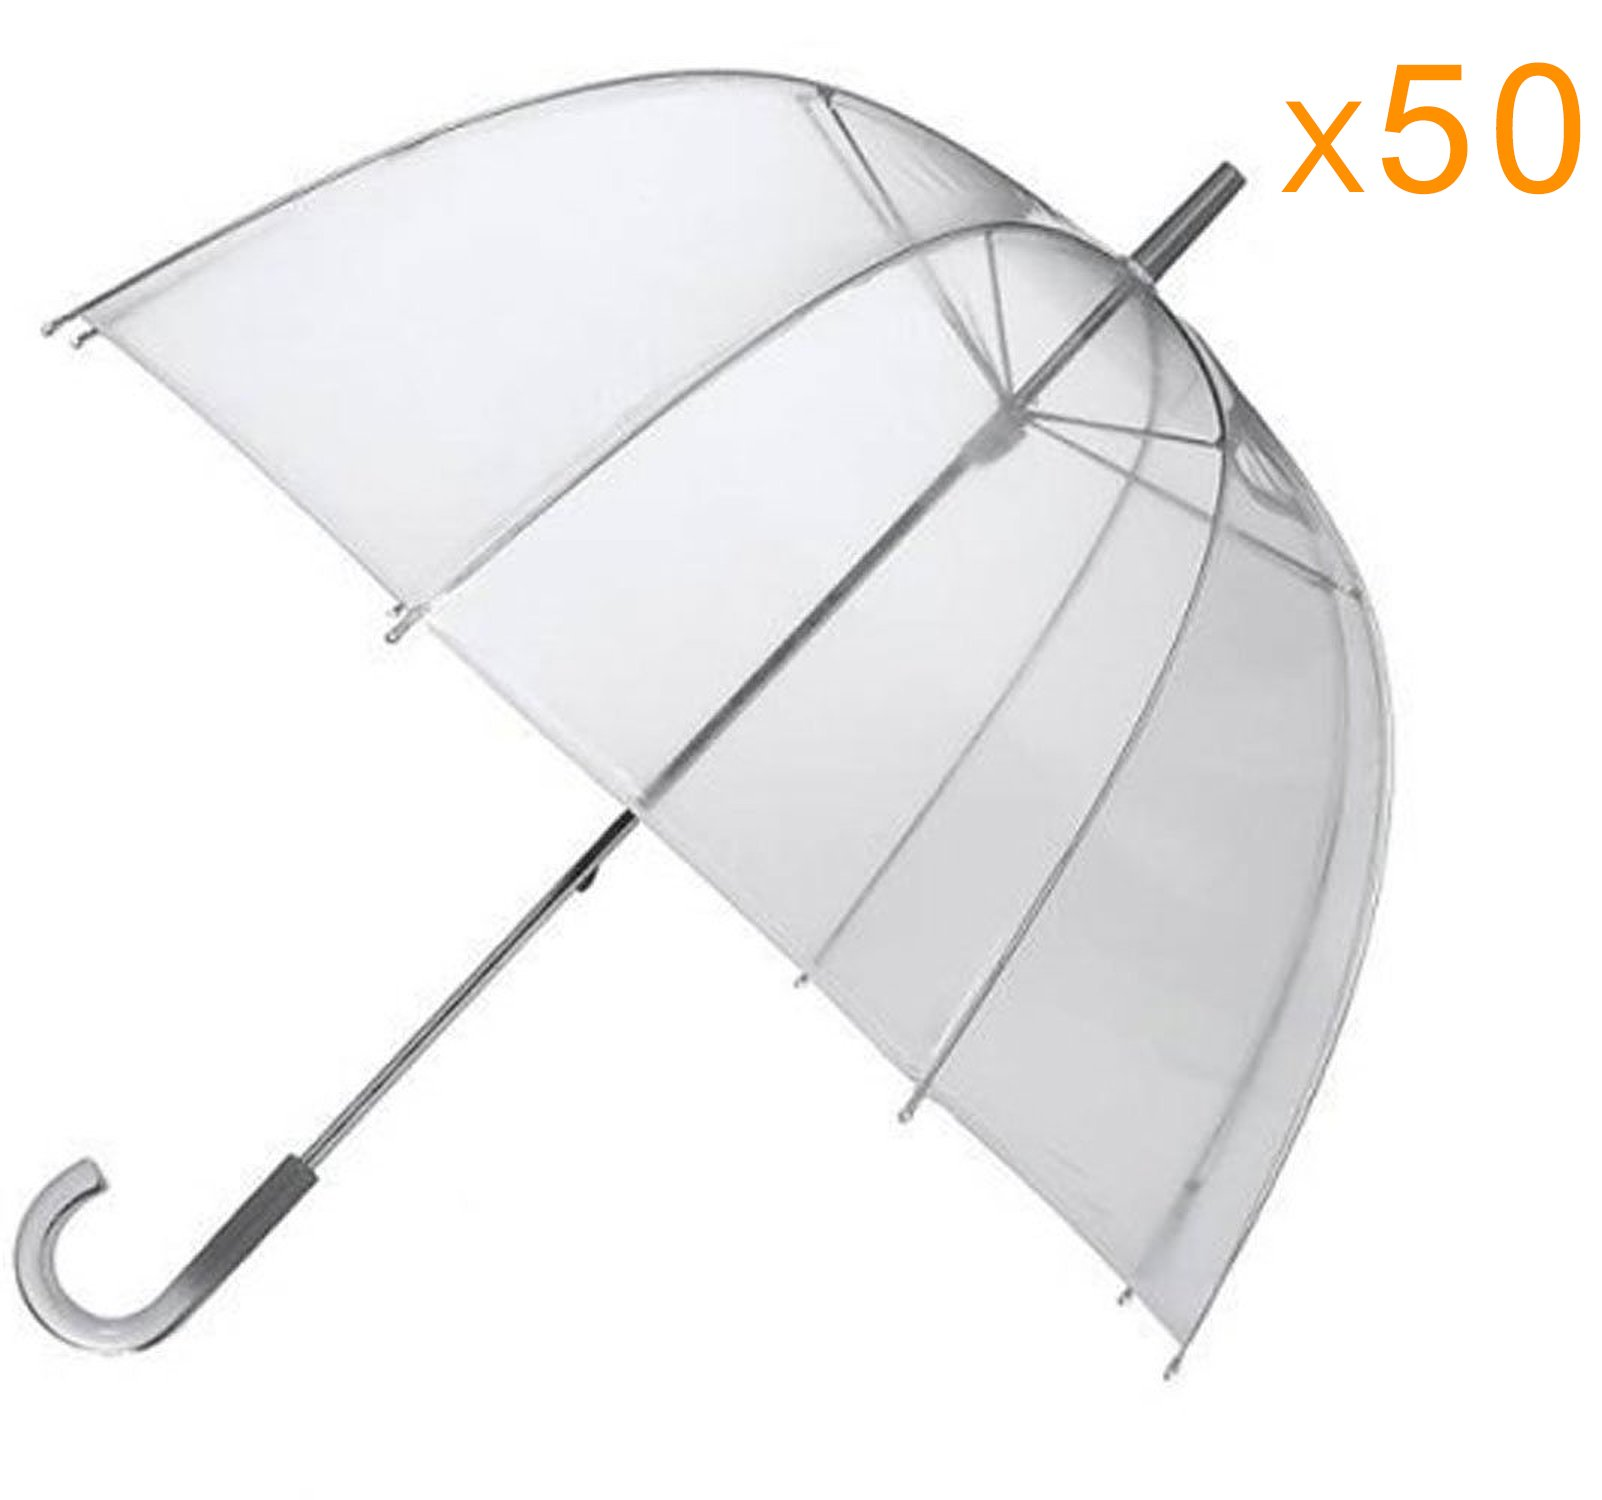 EZbrella Wholesale Dome Bubble Umbrellas Auto Open, 46'' ARC, Case of 50